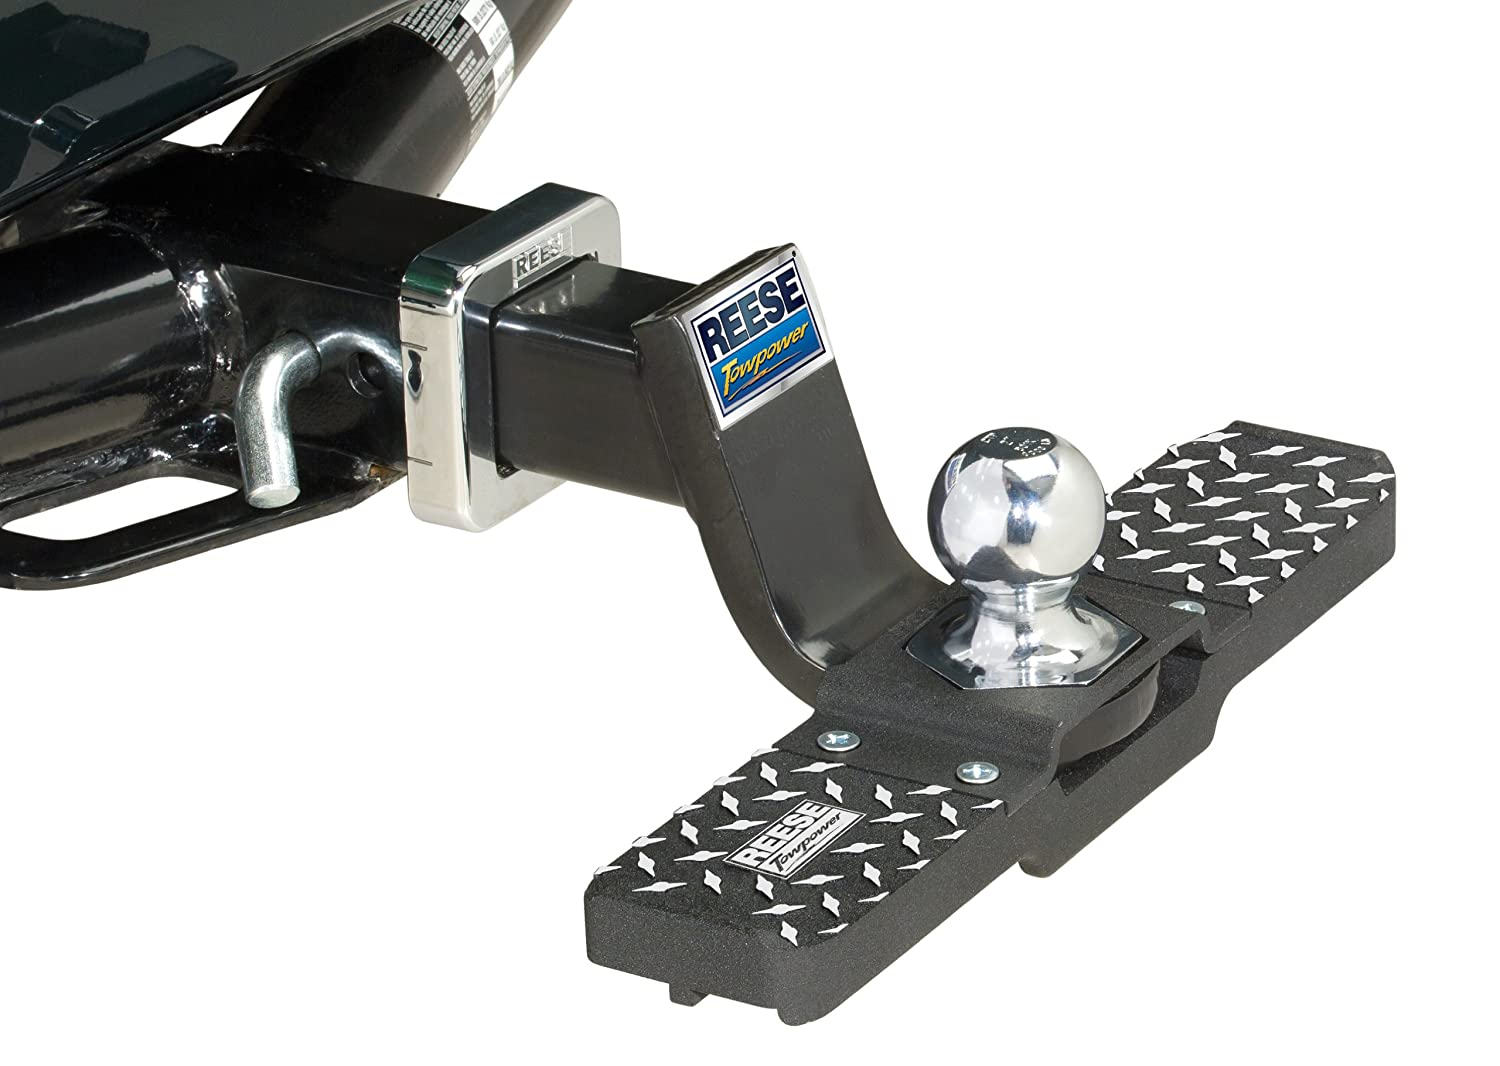 amazon com reese towpower 7060200 tow and go hitch step automotive